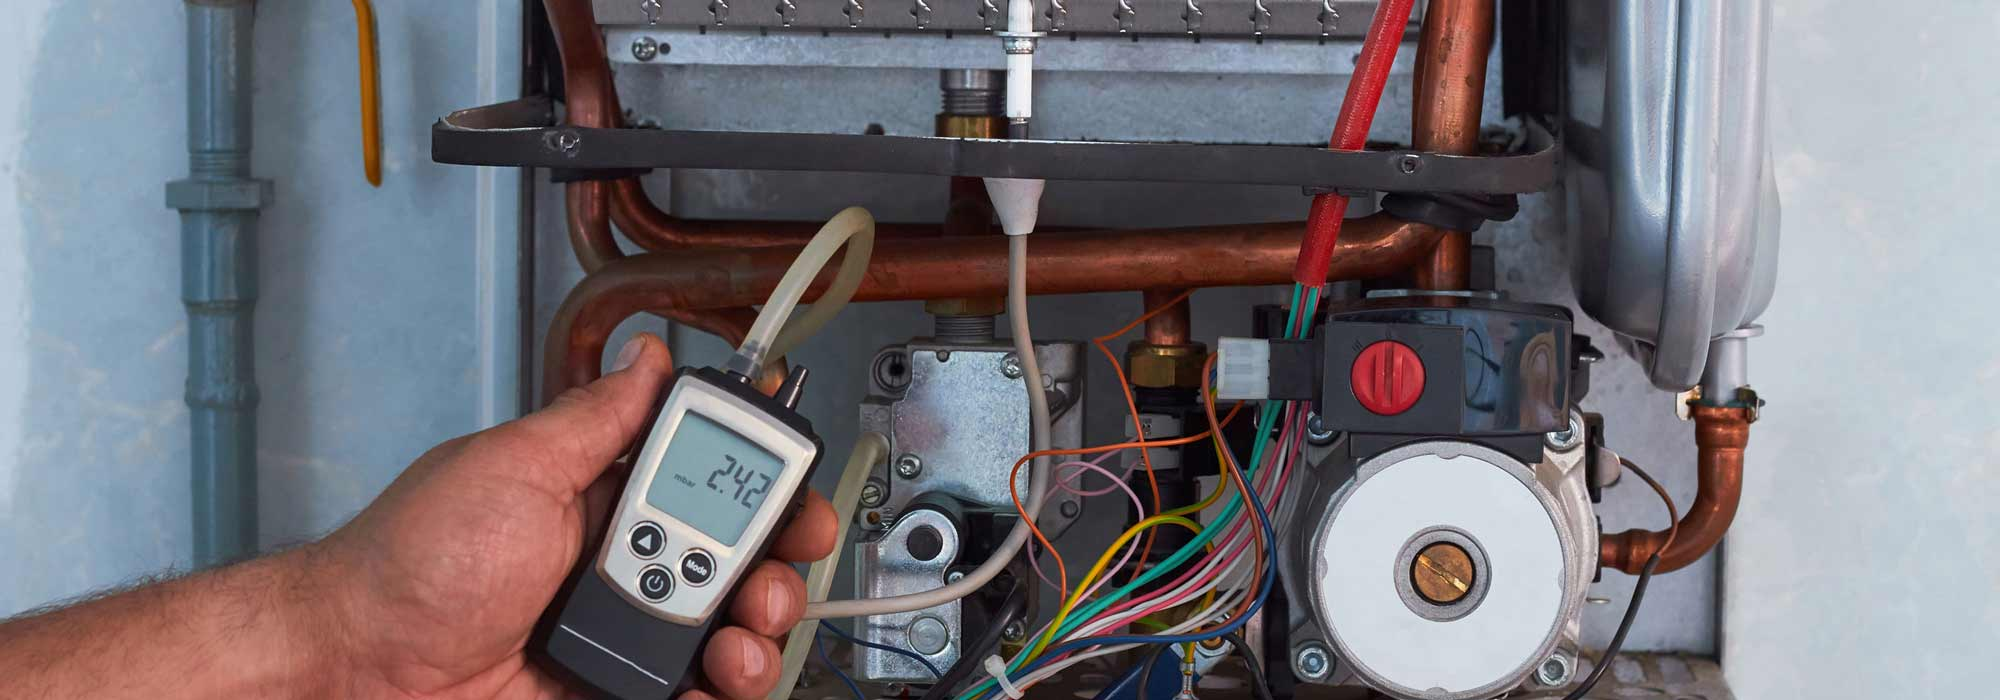 boiler-service-costs-58